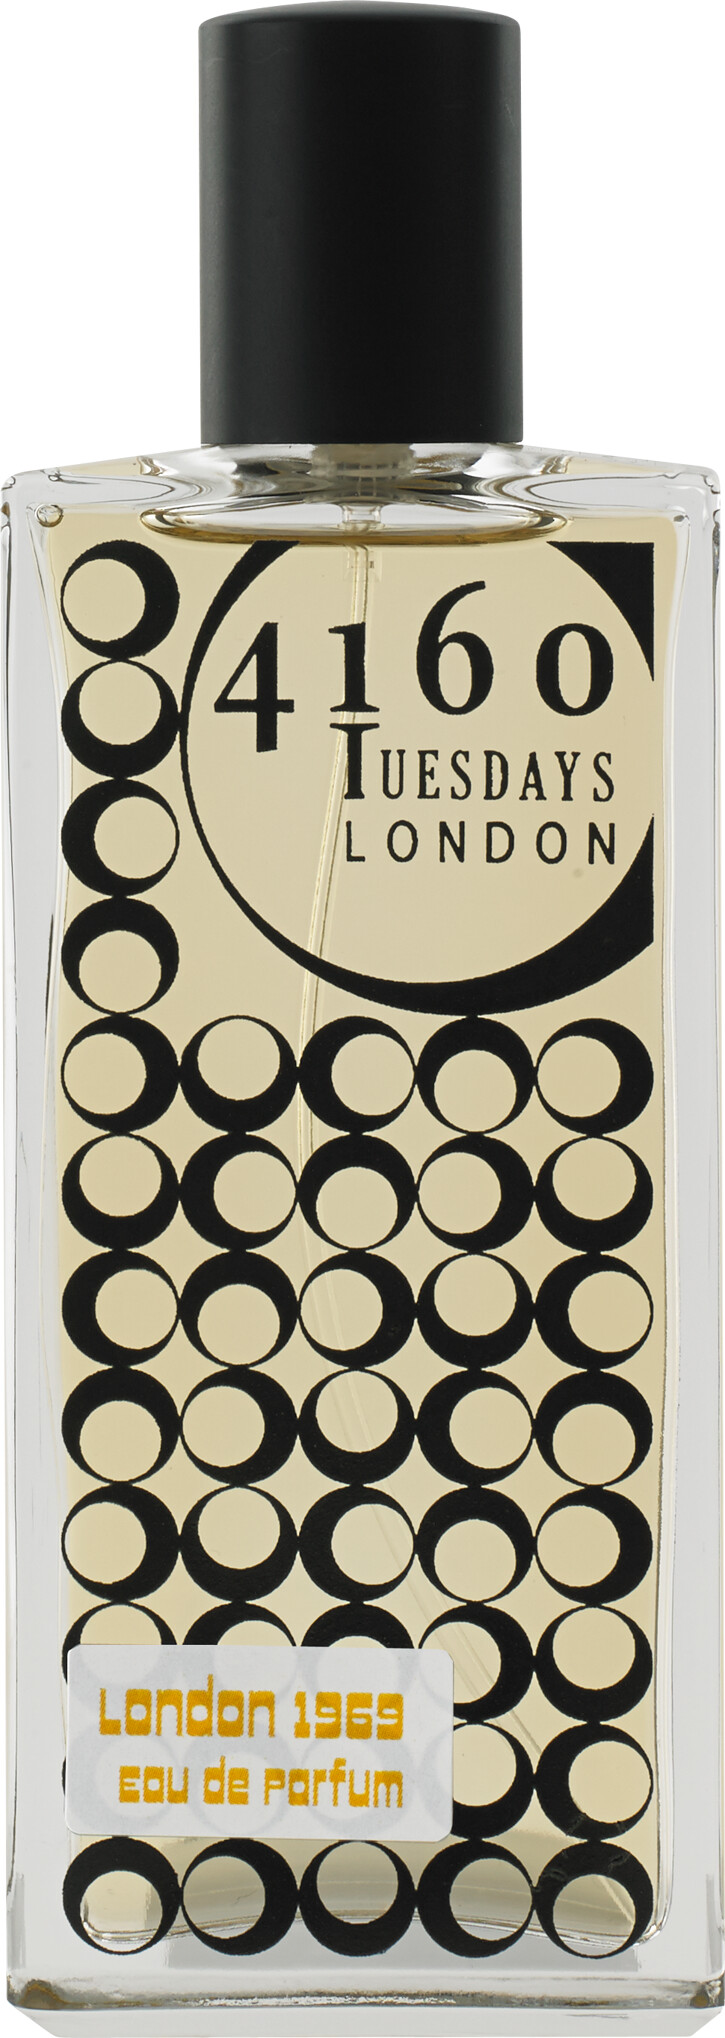 4160 Tuesdays London 1969